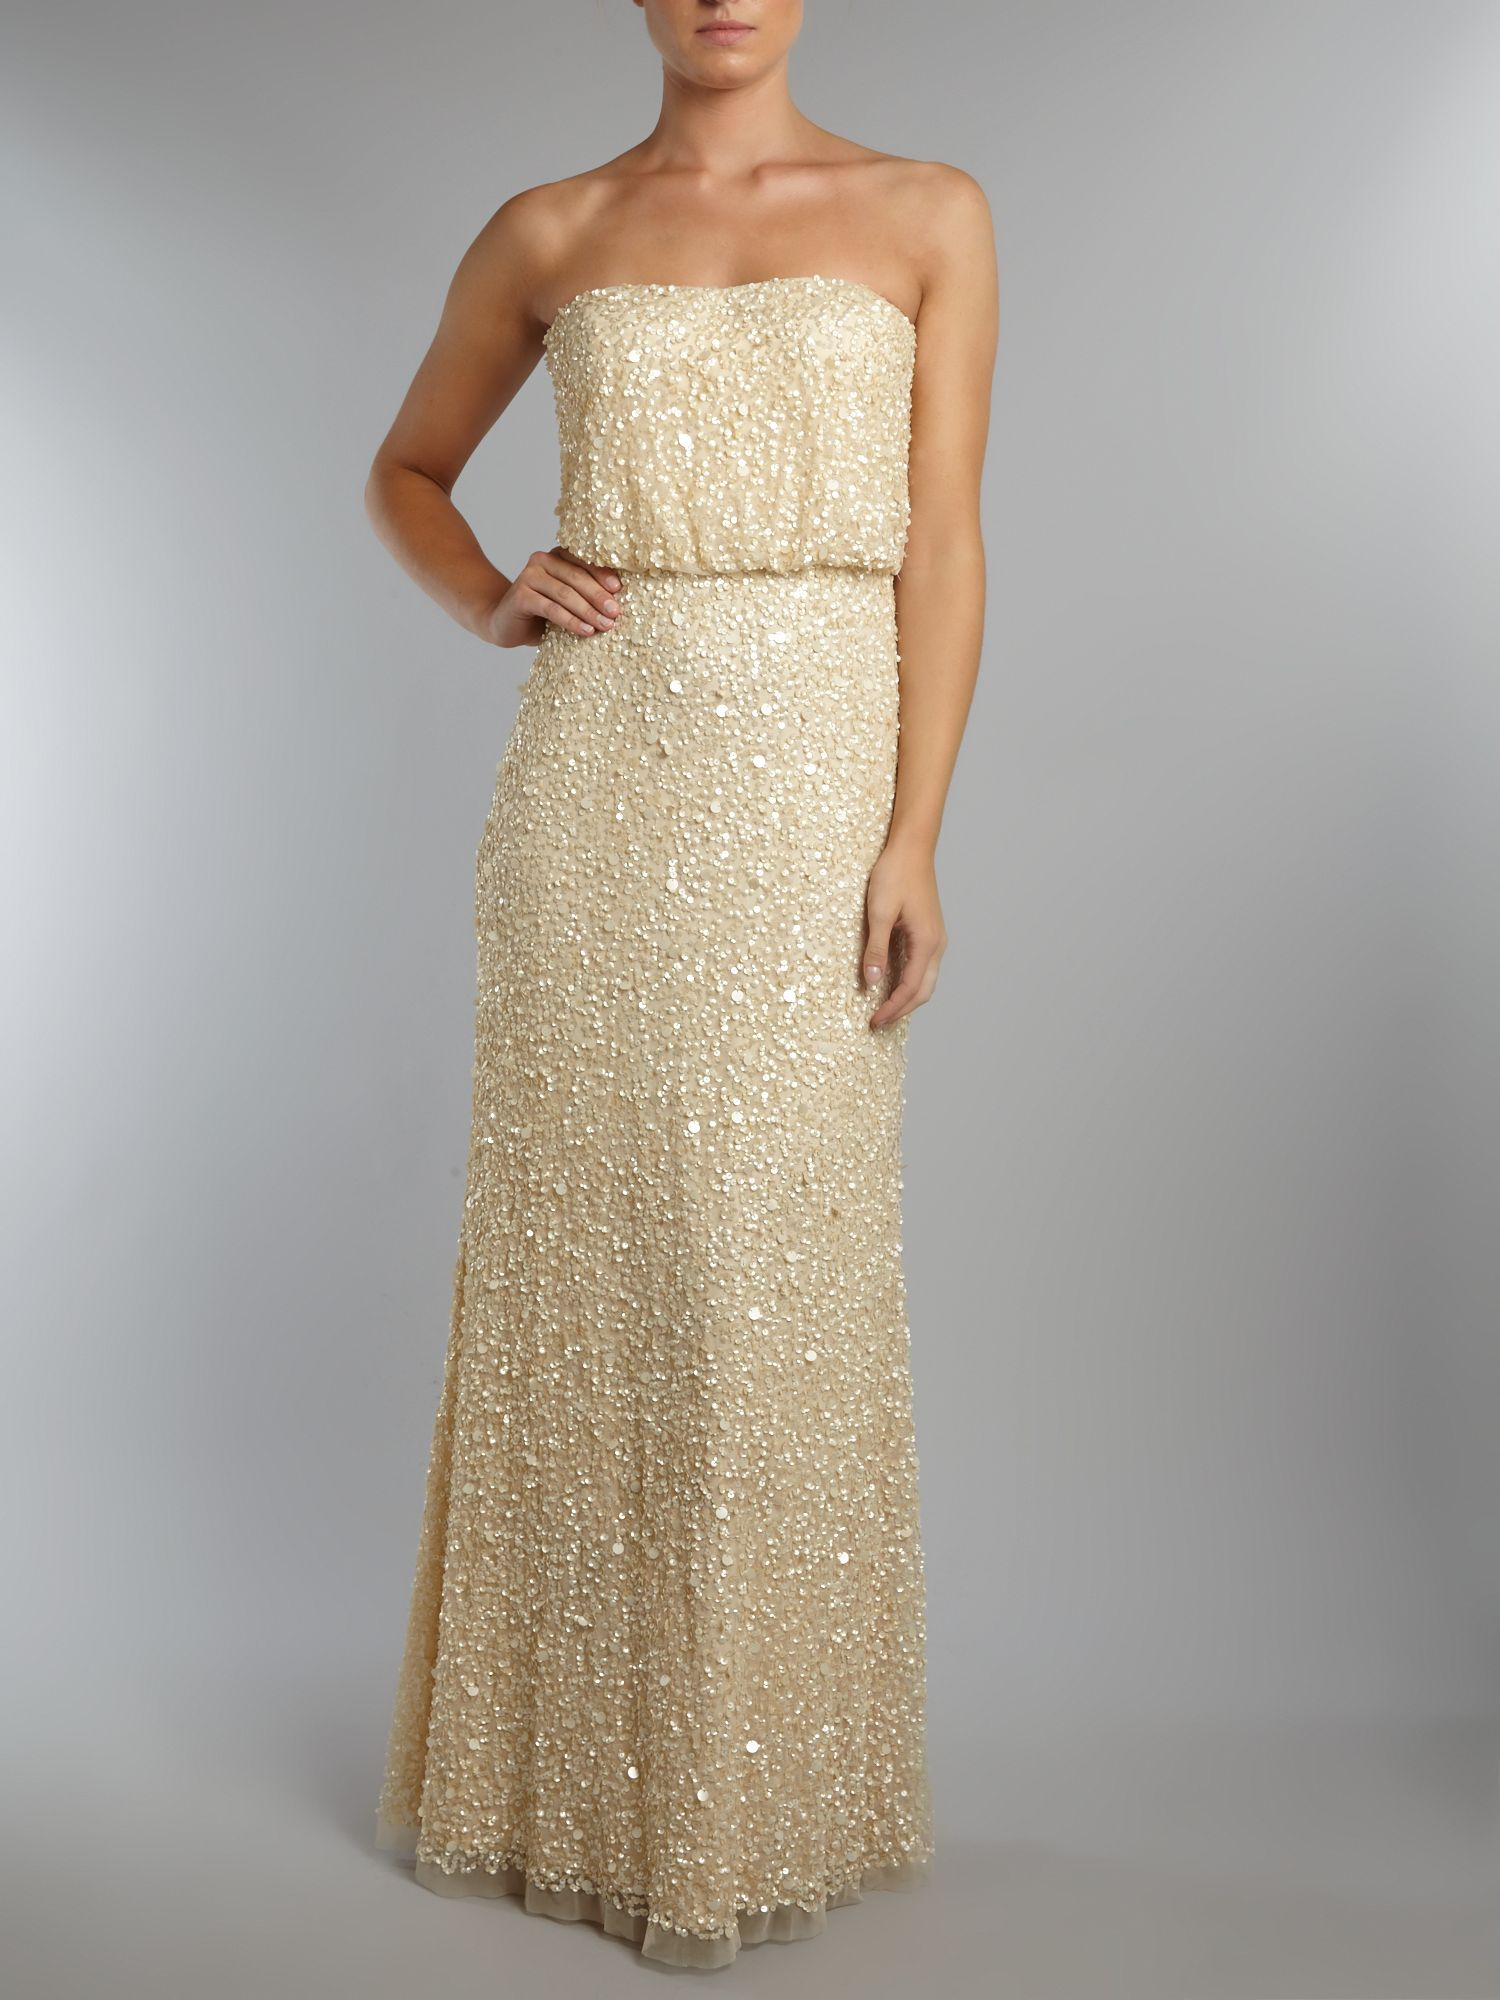 Adrianna Papell Strapless All Over Beaded Dress in Natural   Lyst Gallery